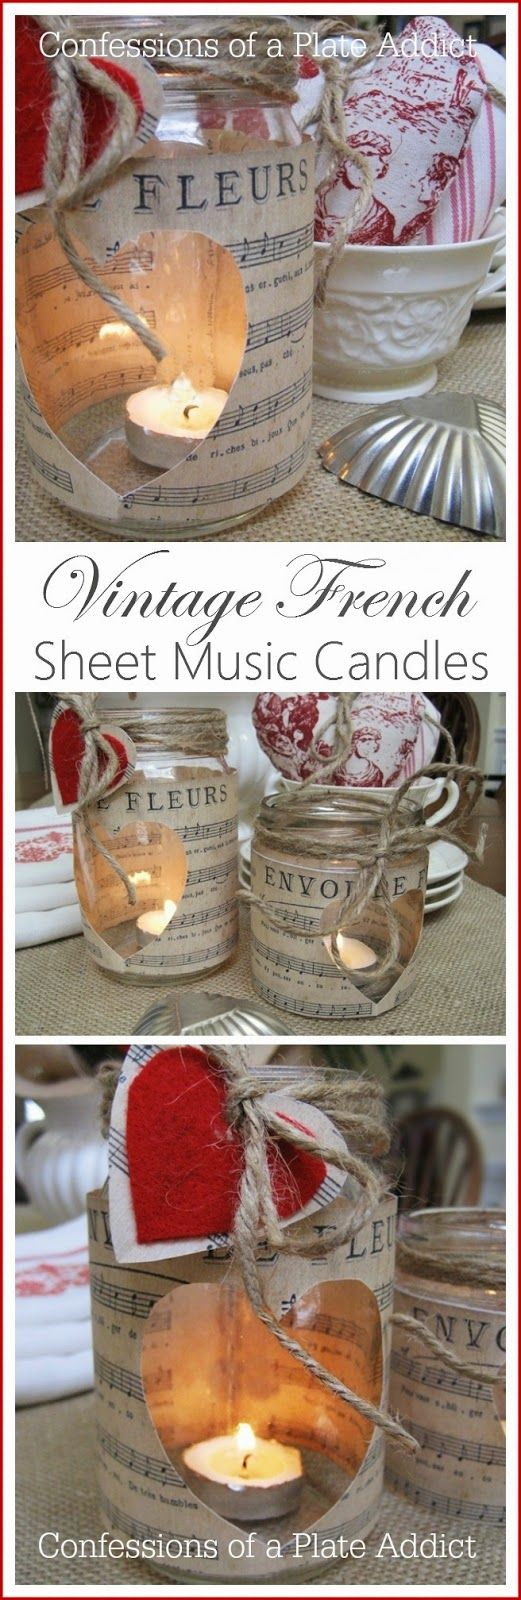 Vintage French Sheet Music Candles